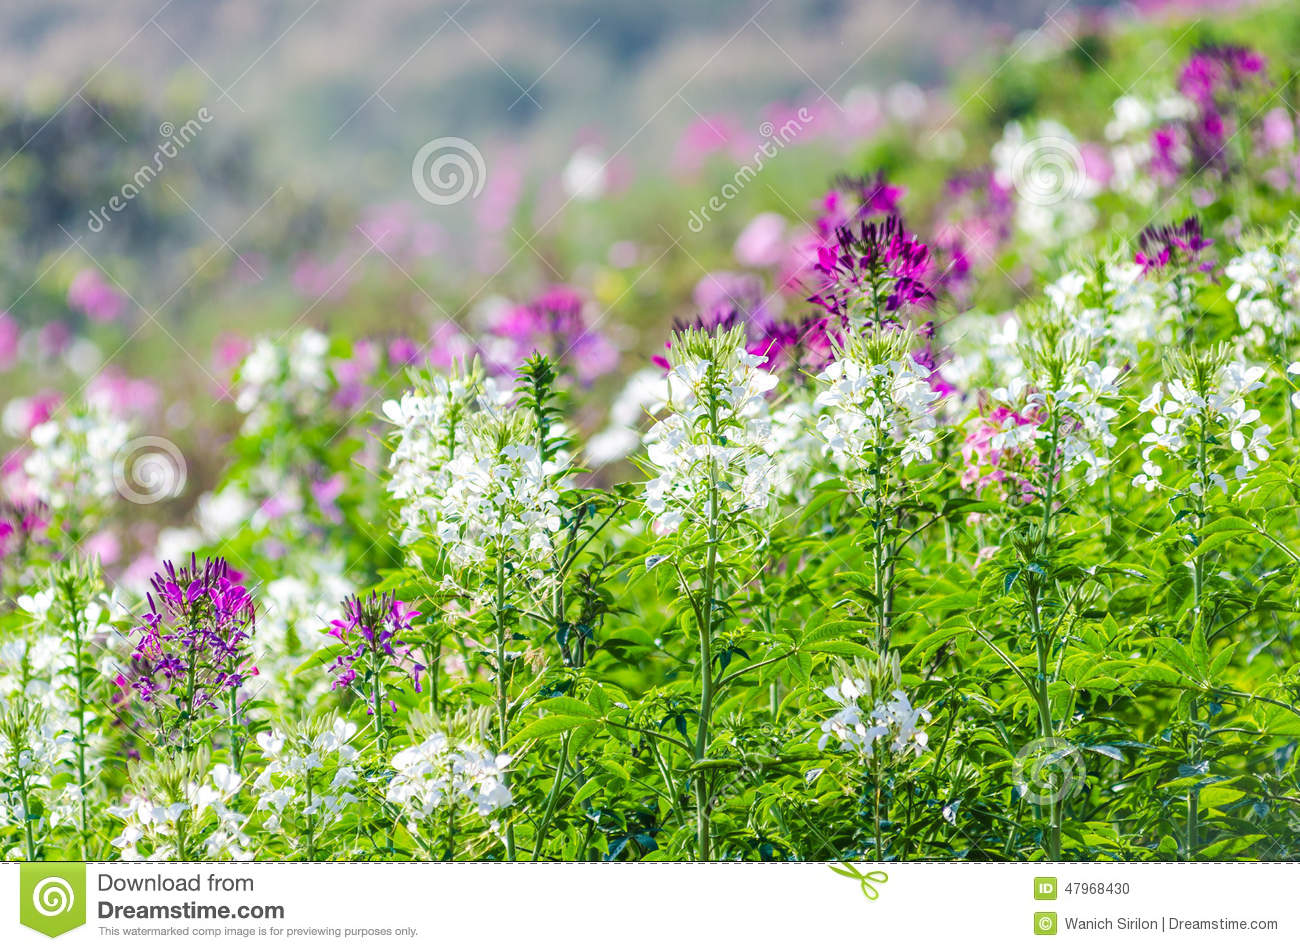 Purple And White Flowers In The Field With Blurred Background Stock